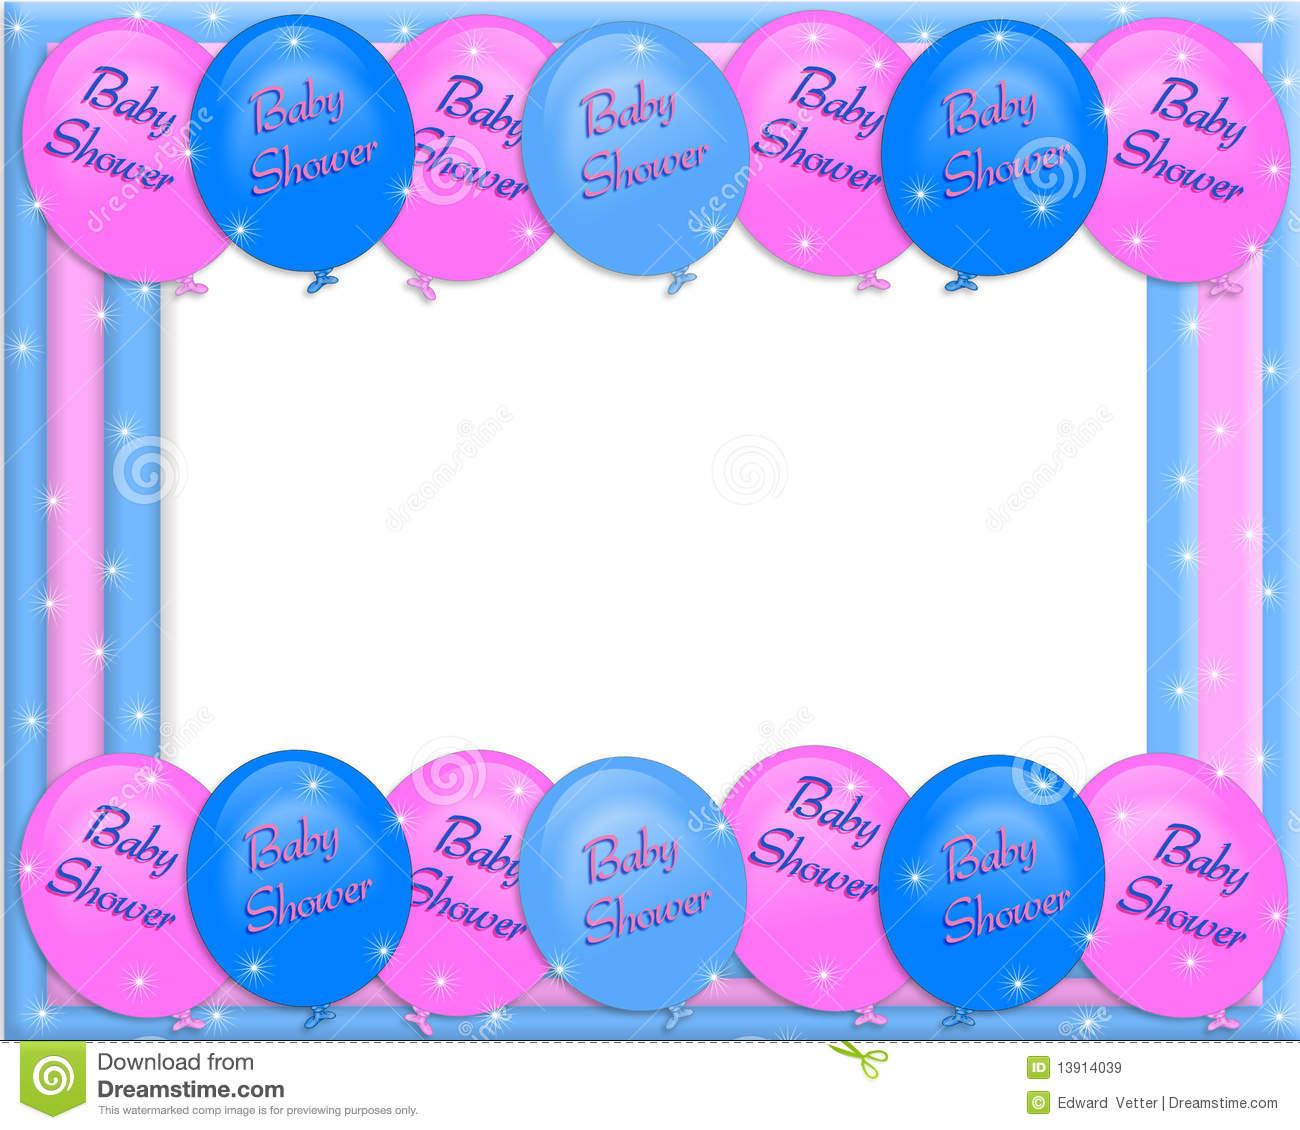 Free Clip Art Borders For Baby .